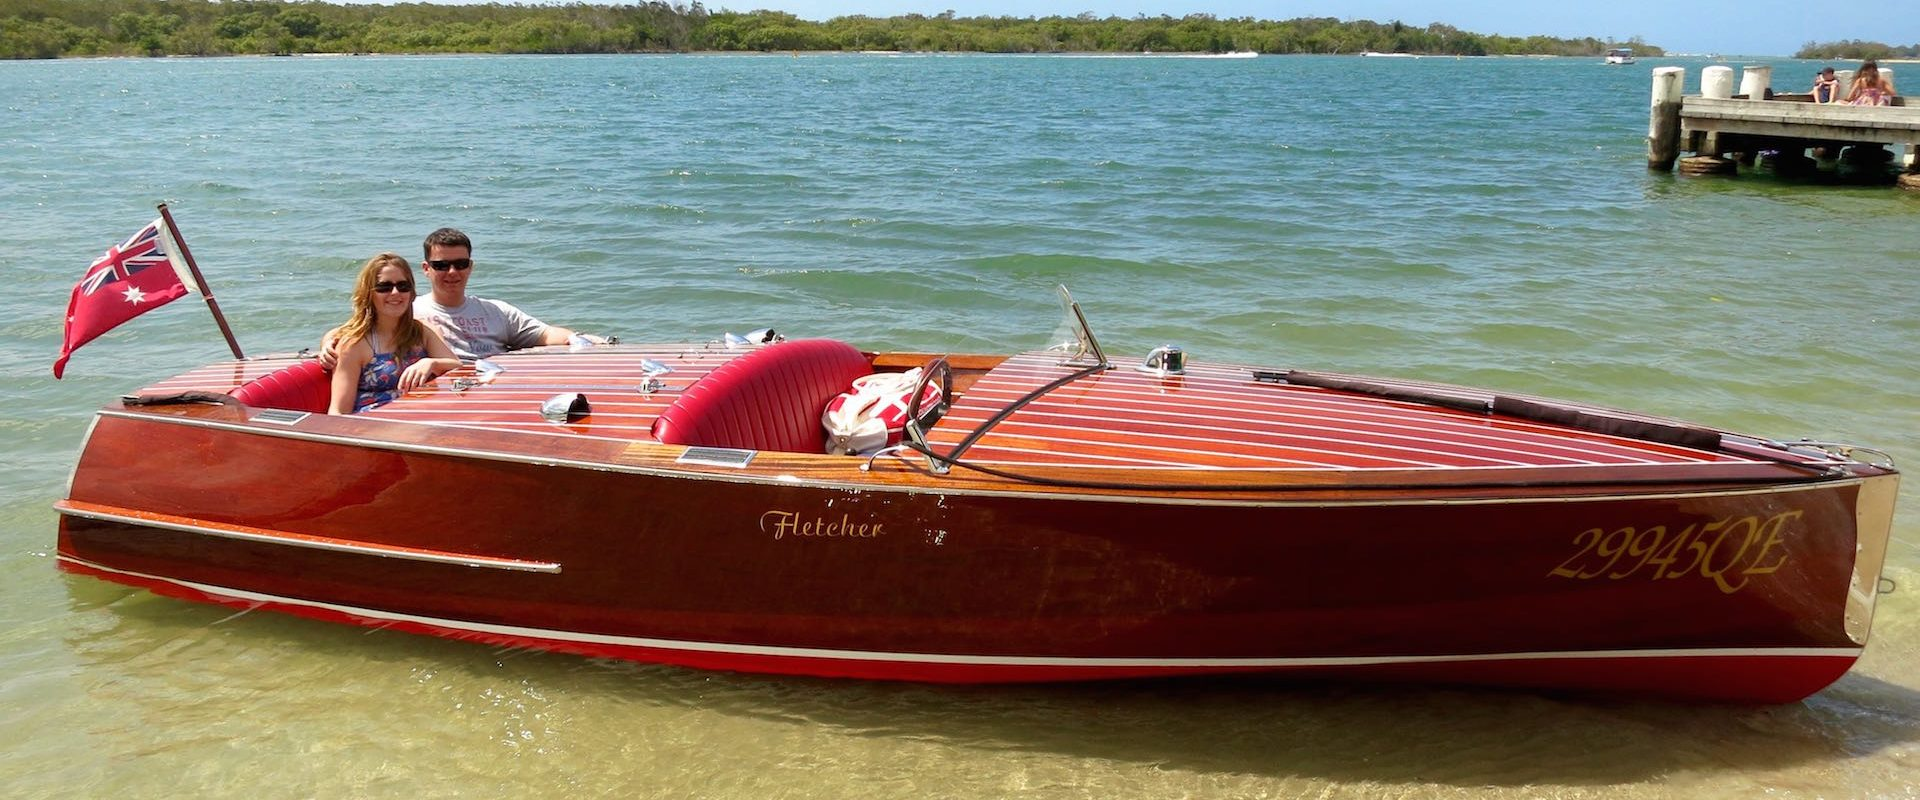 Things to do in noosa - classic boat beach picnic